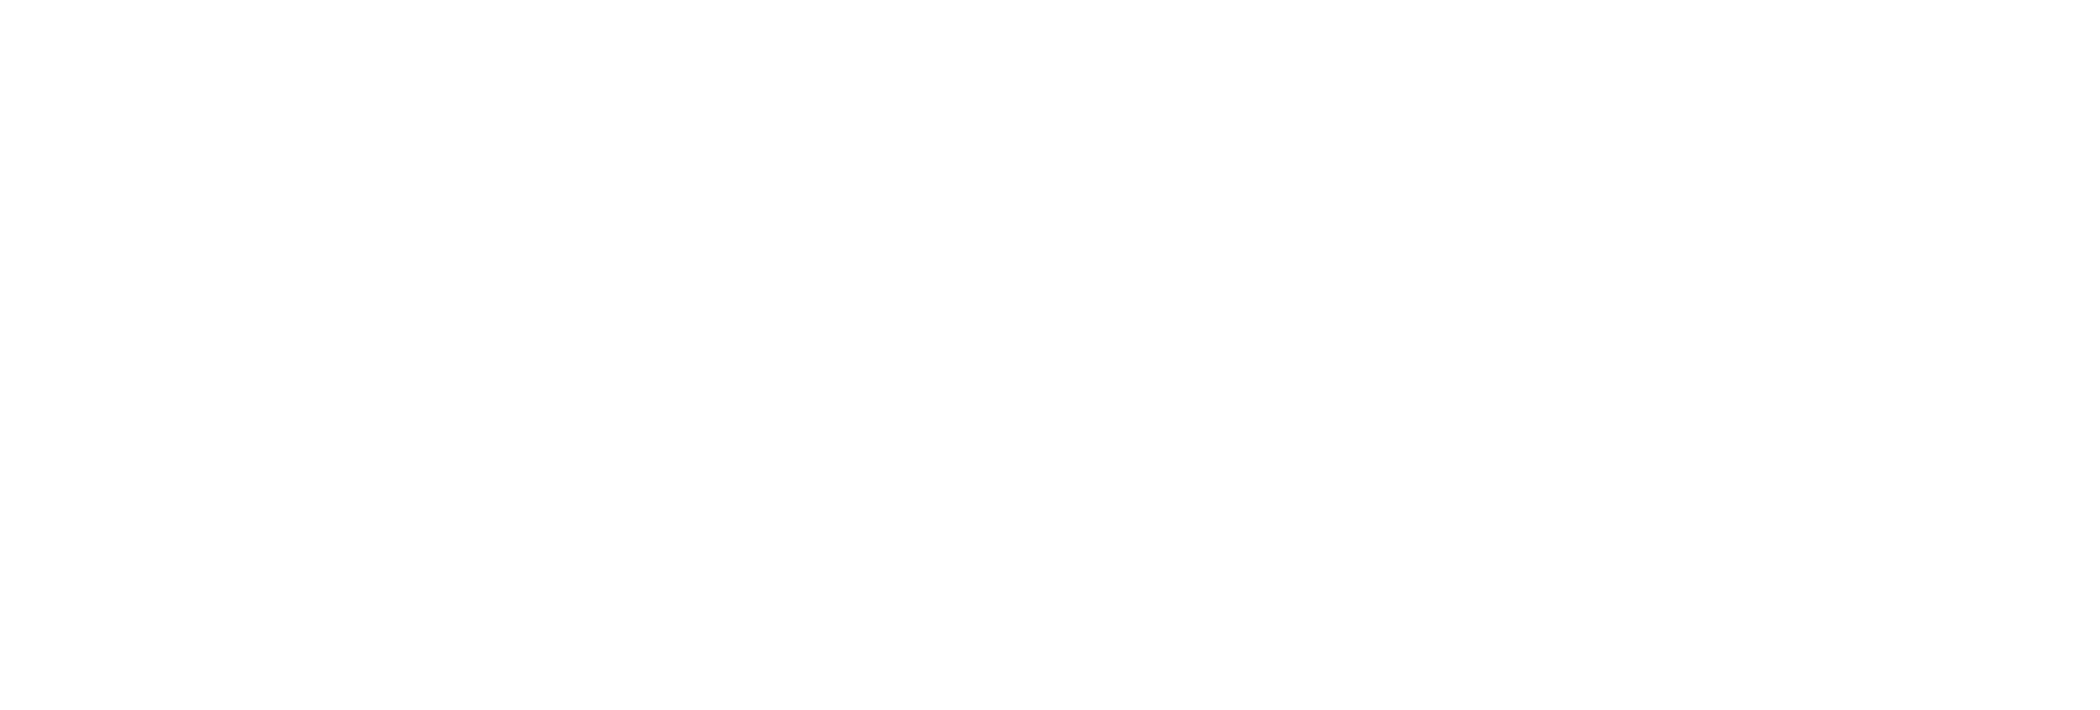 PFP Employee Fire Training White.png